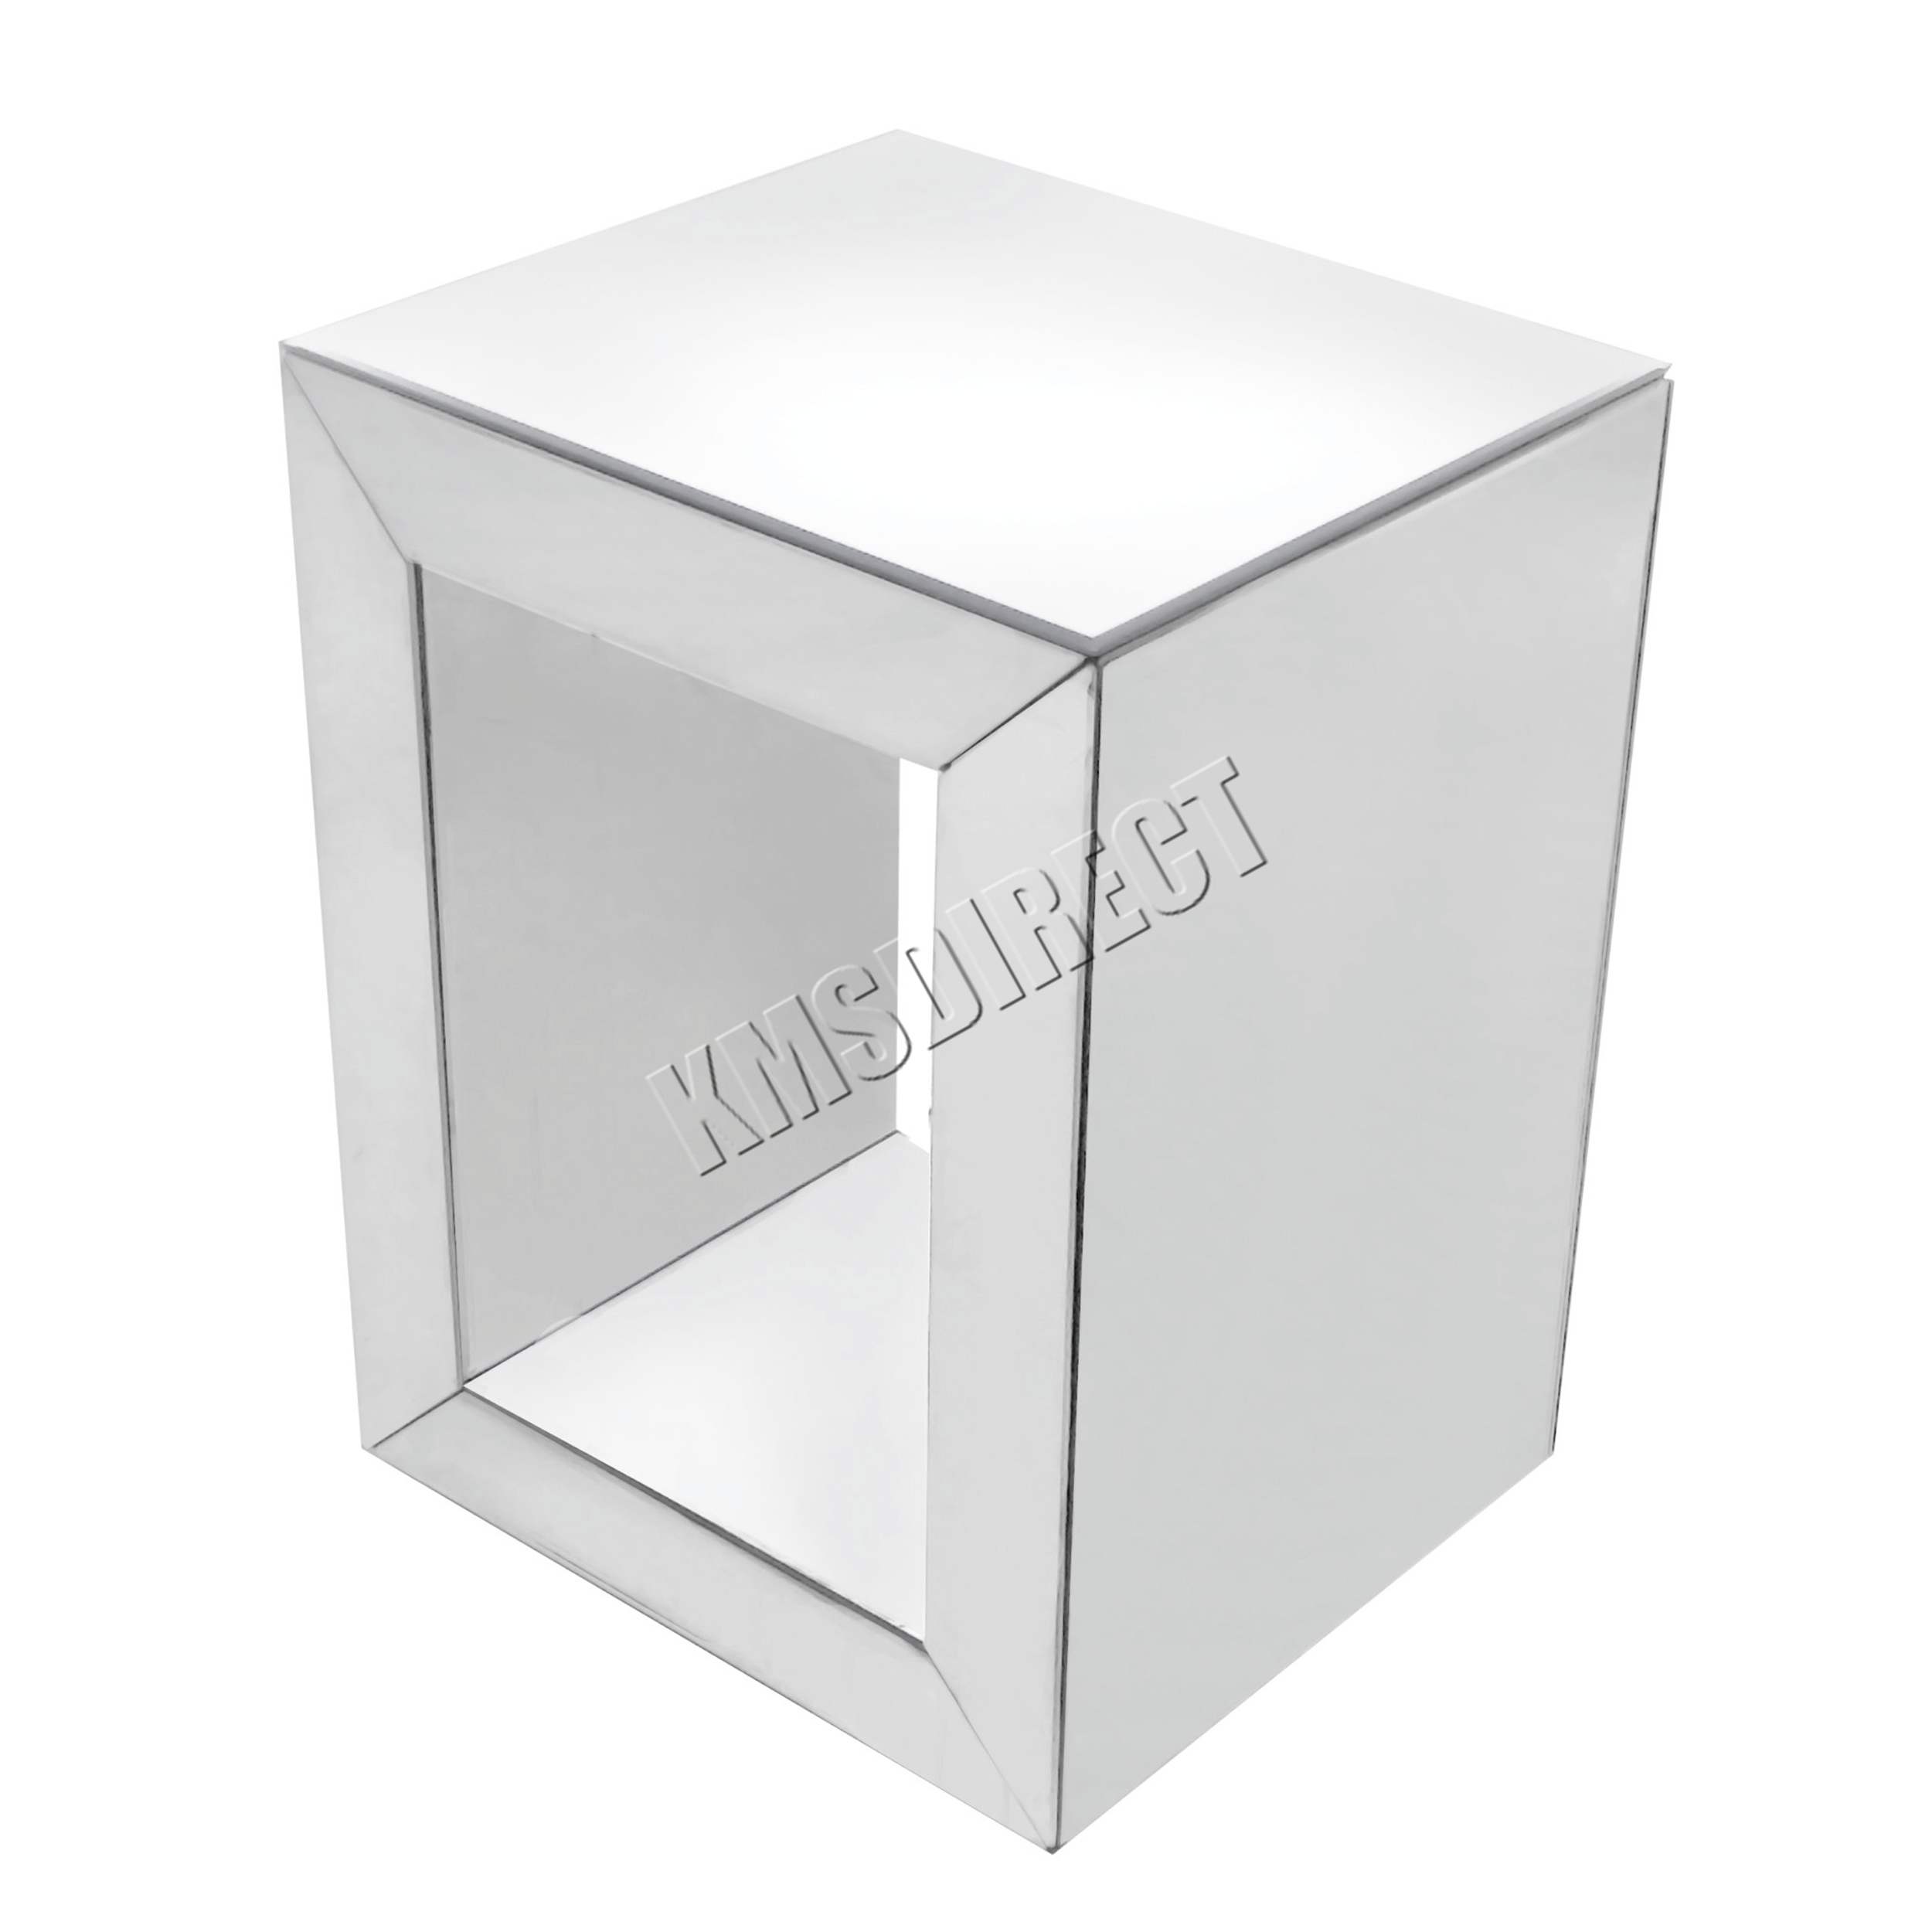 Sentinel WestWood Mirrored Furniture Clear Glass Bedside Cabinet Cube Table  Bedroom MT03